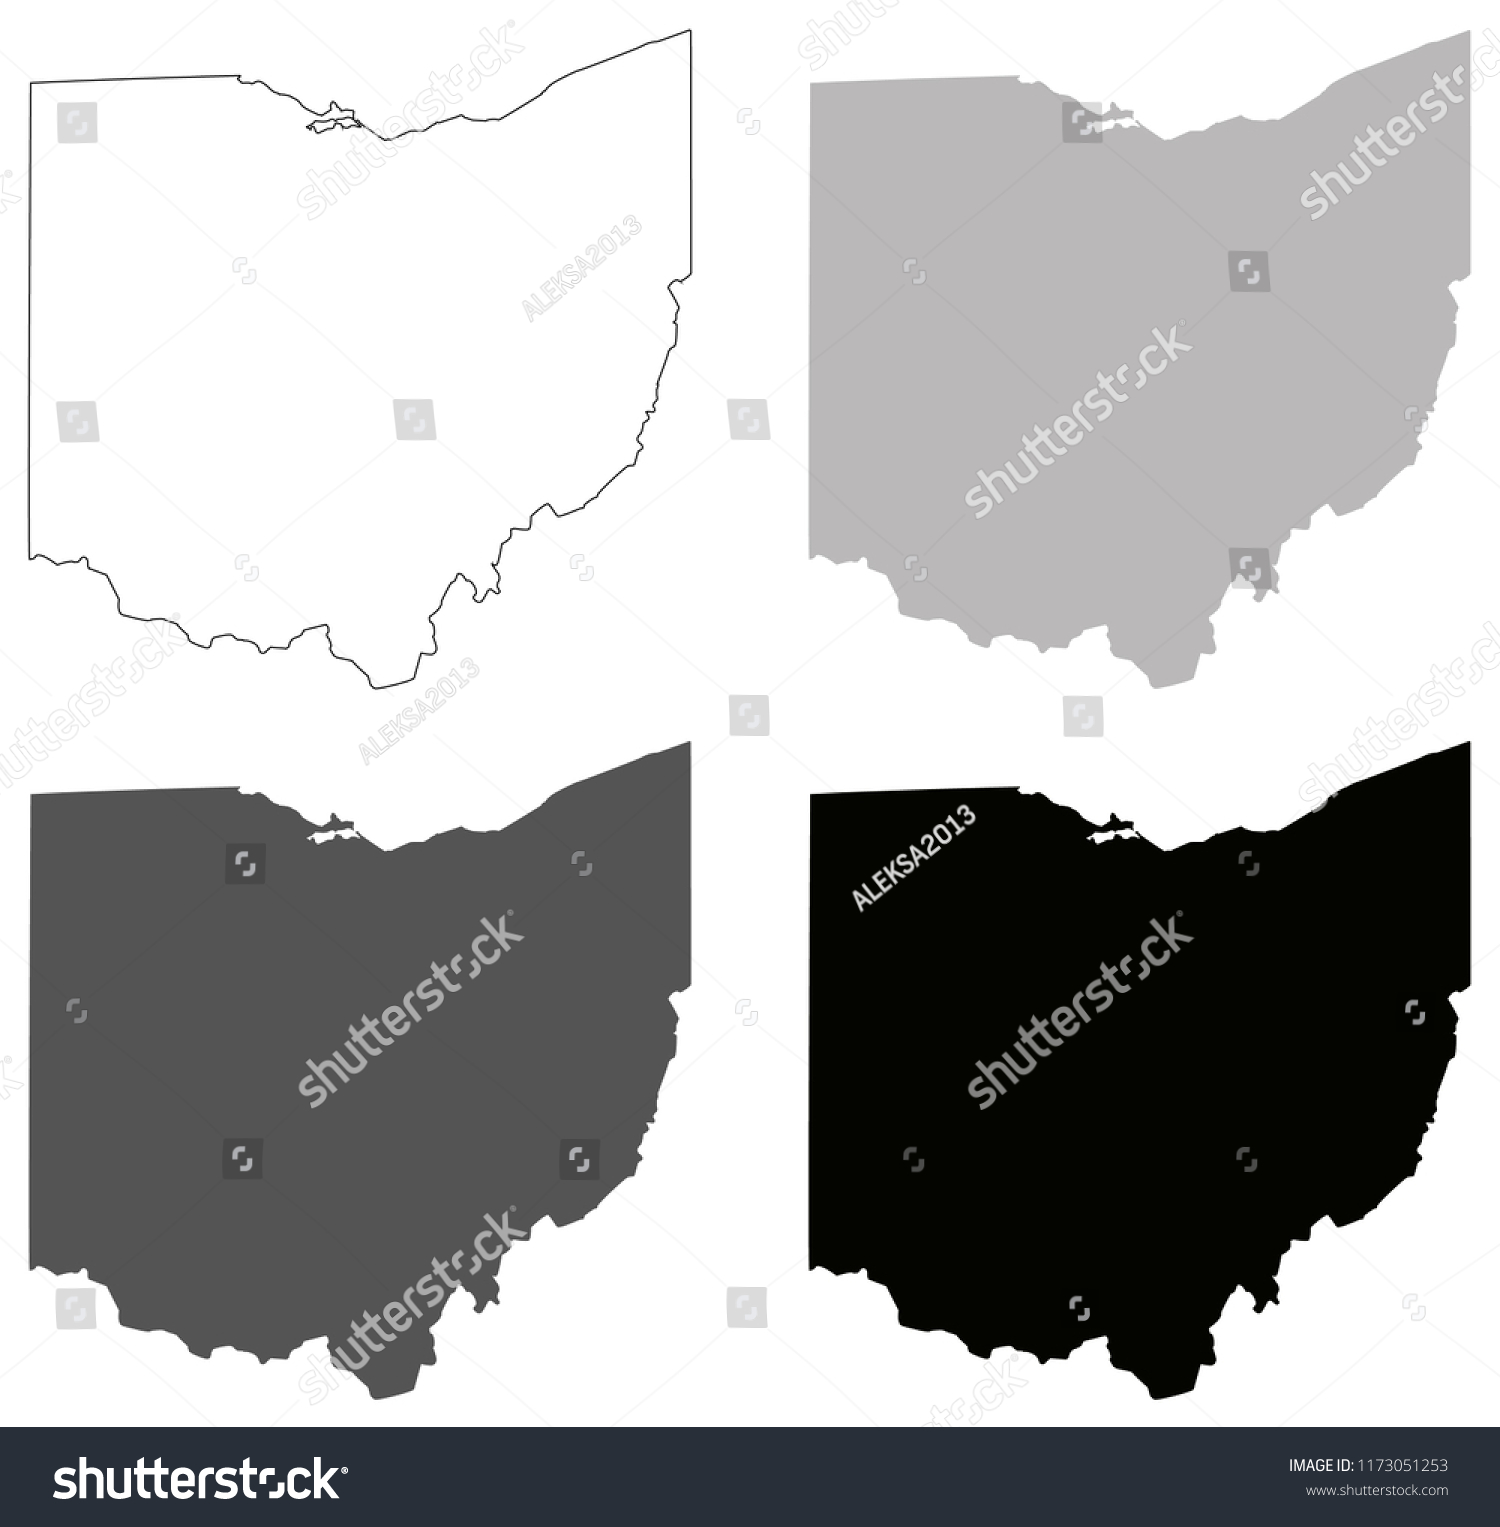 Free Ohio Map.Vector Illustration Ohio Maps Stock Vector Royalty Free 1173051253